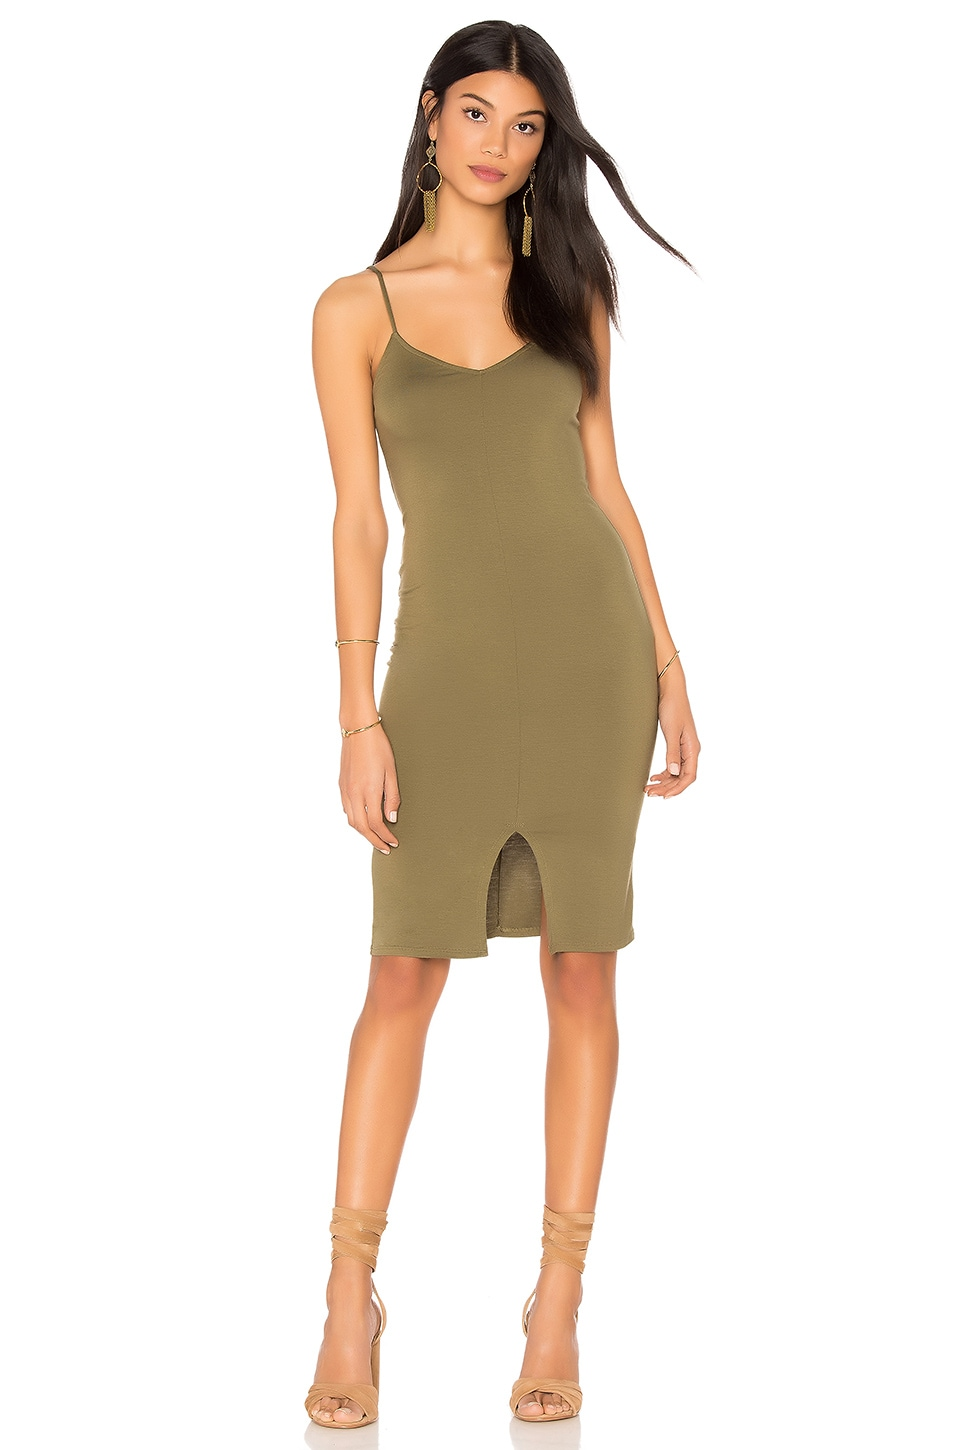 Clayton Kim Dress in Olive